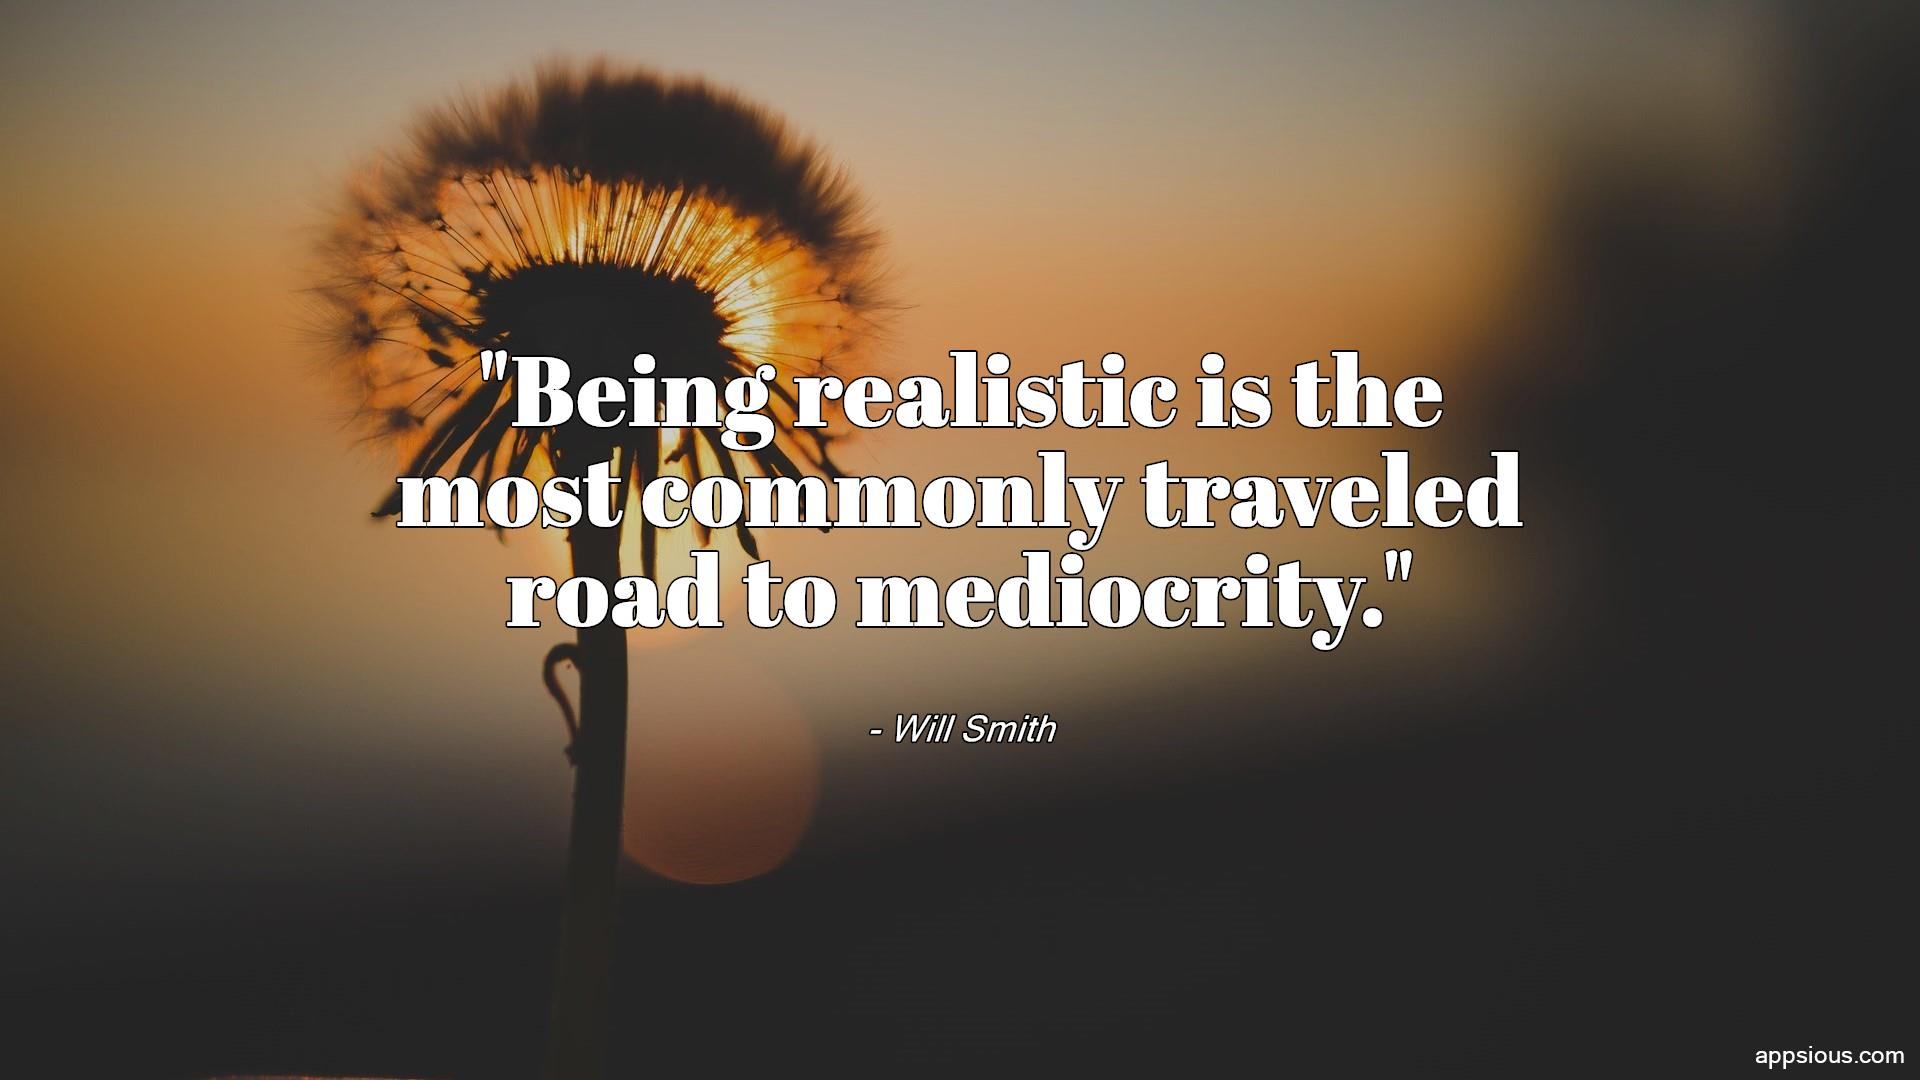 Being realistic is the most commonly traveled road to mediocrity.